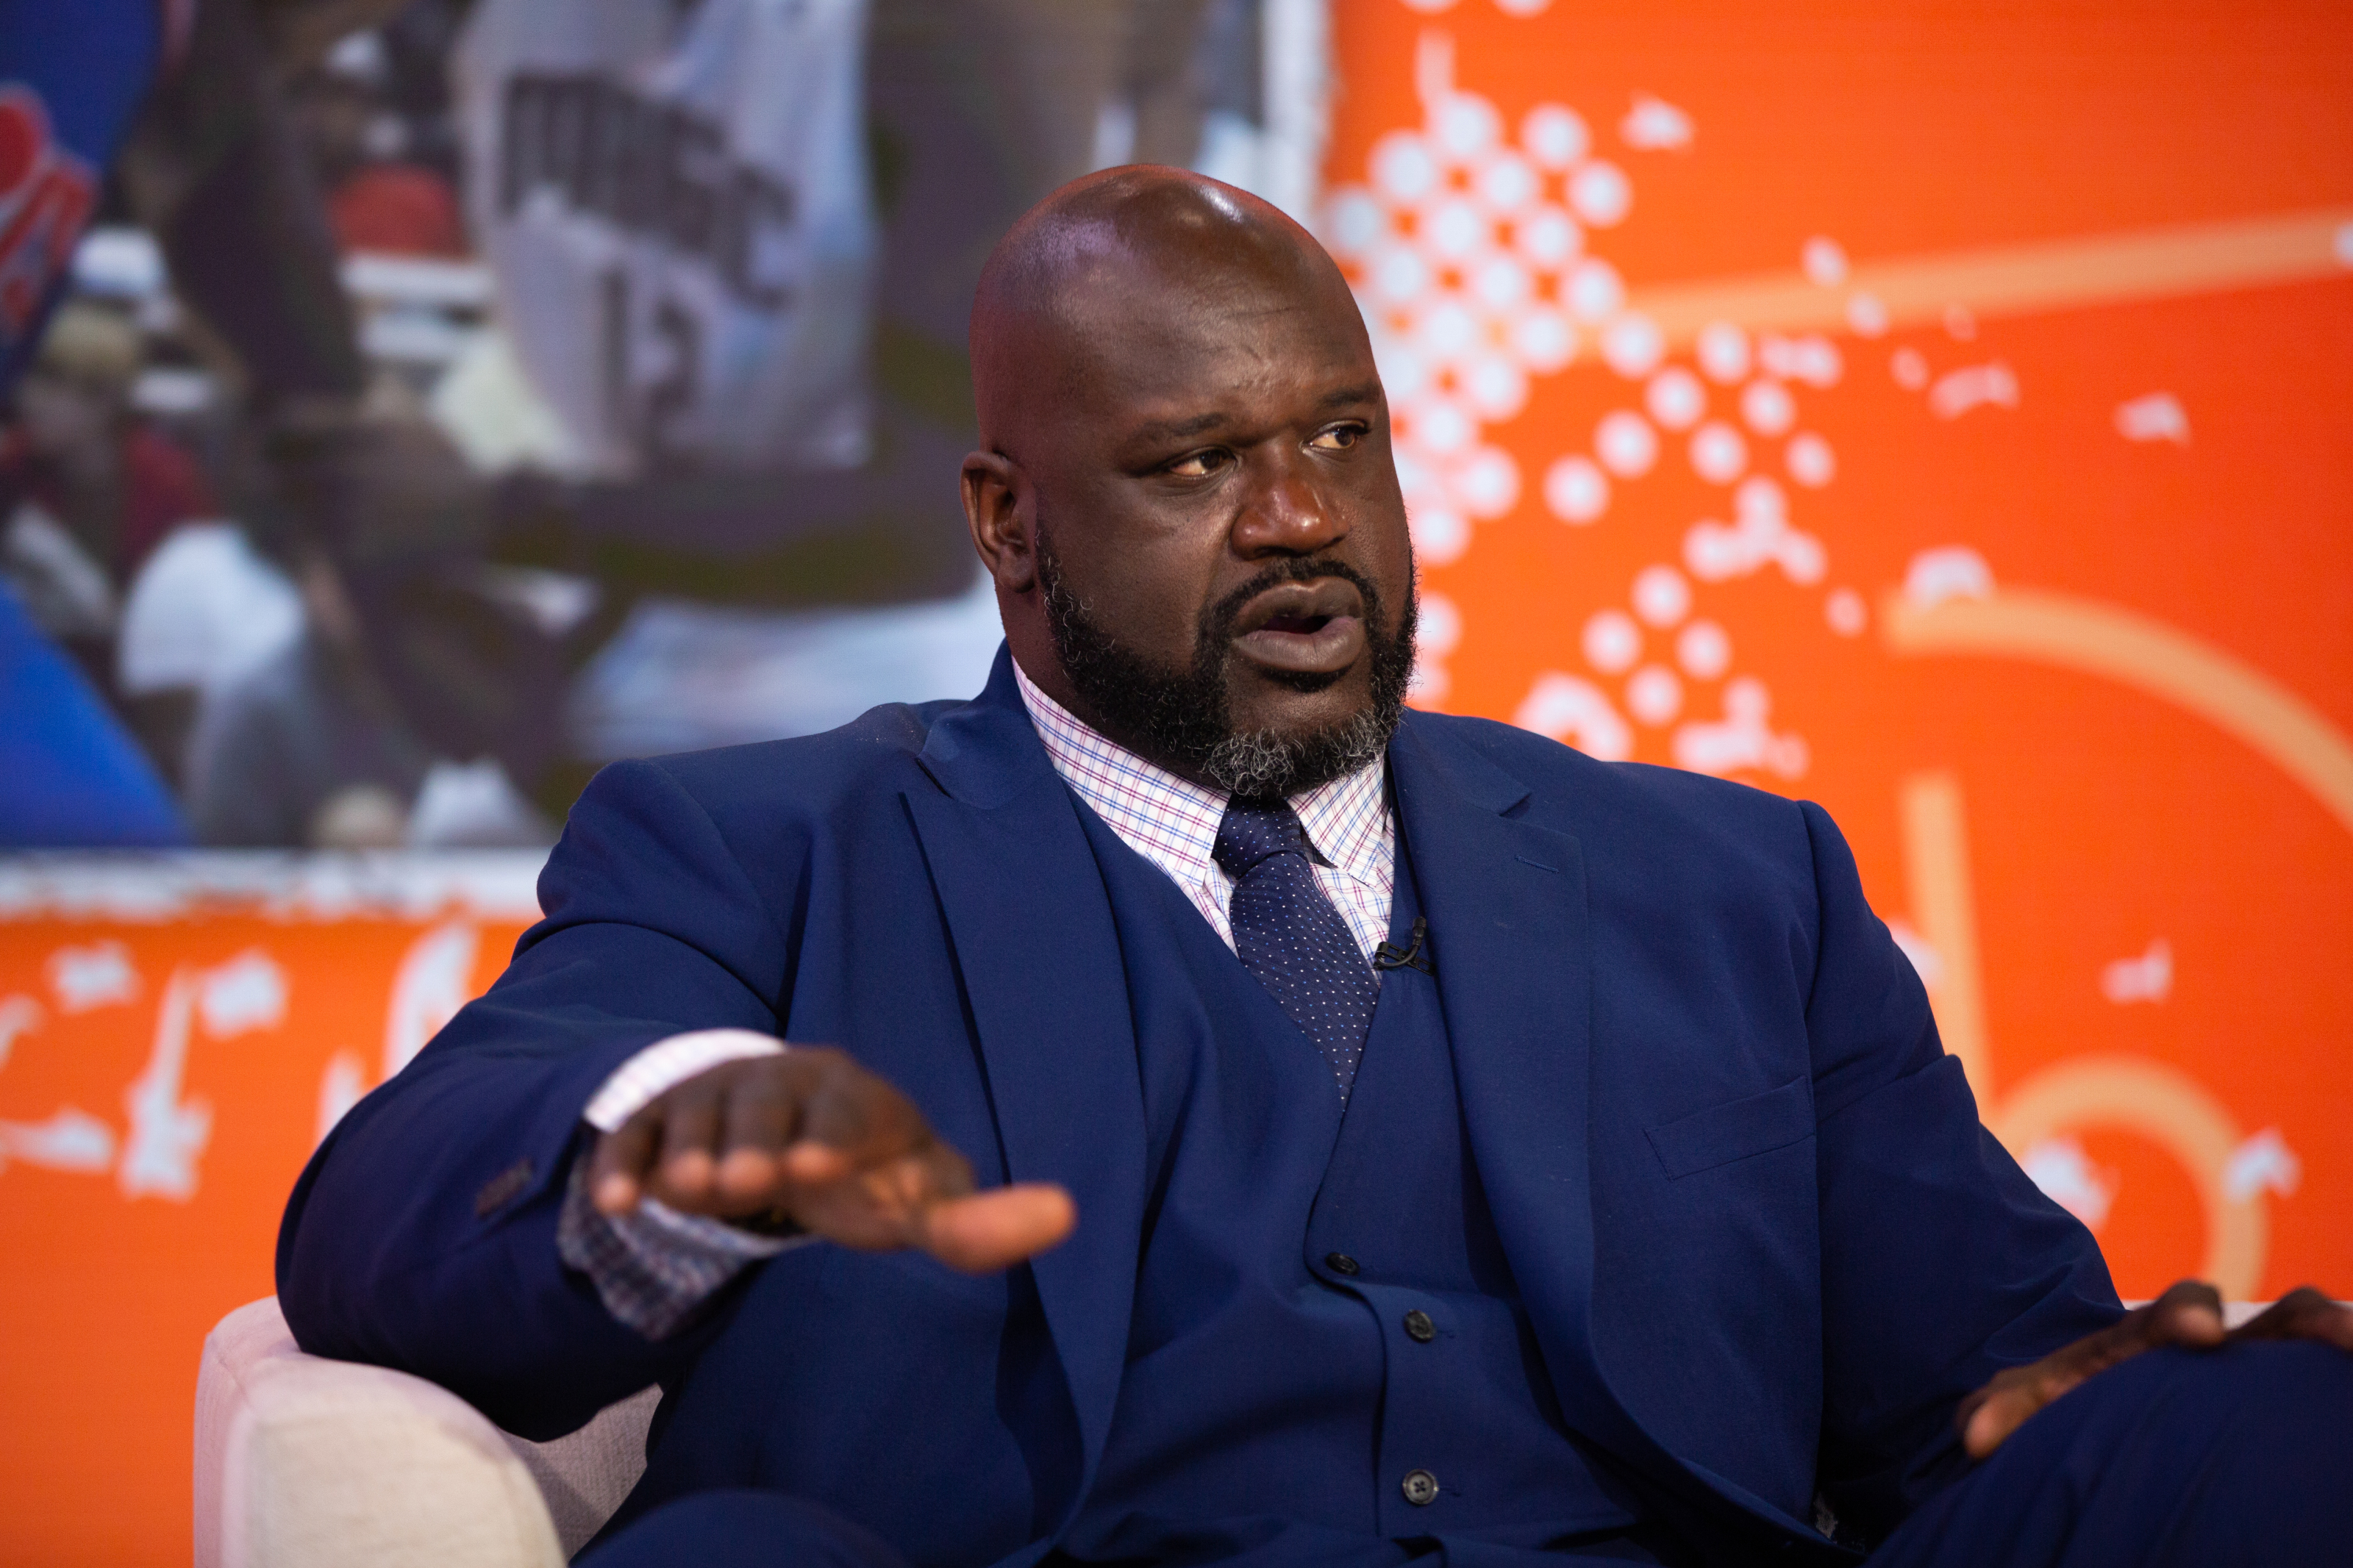 Los Angeles Lakers unveil Shaquille O'Neal's city jerseys, Twitter ...